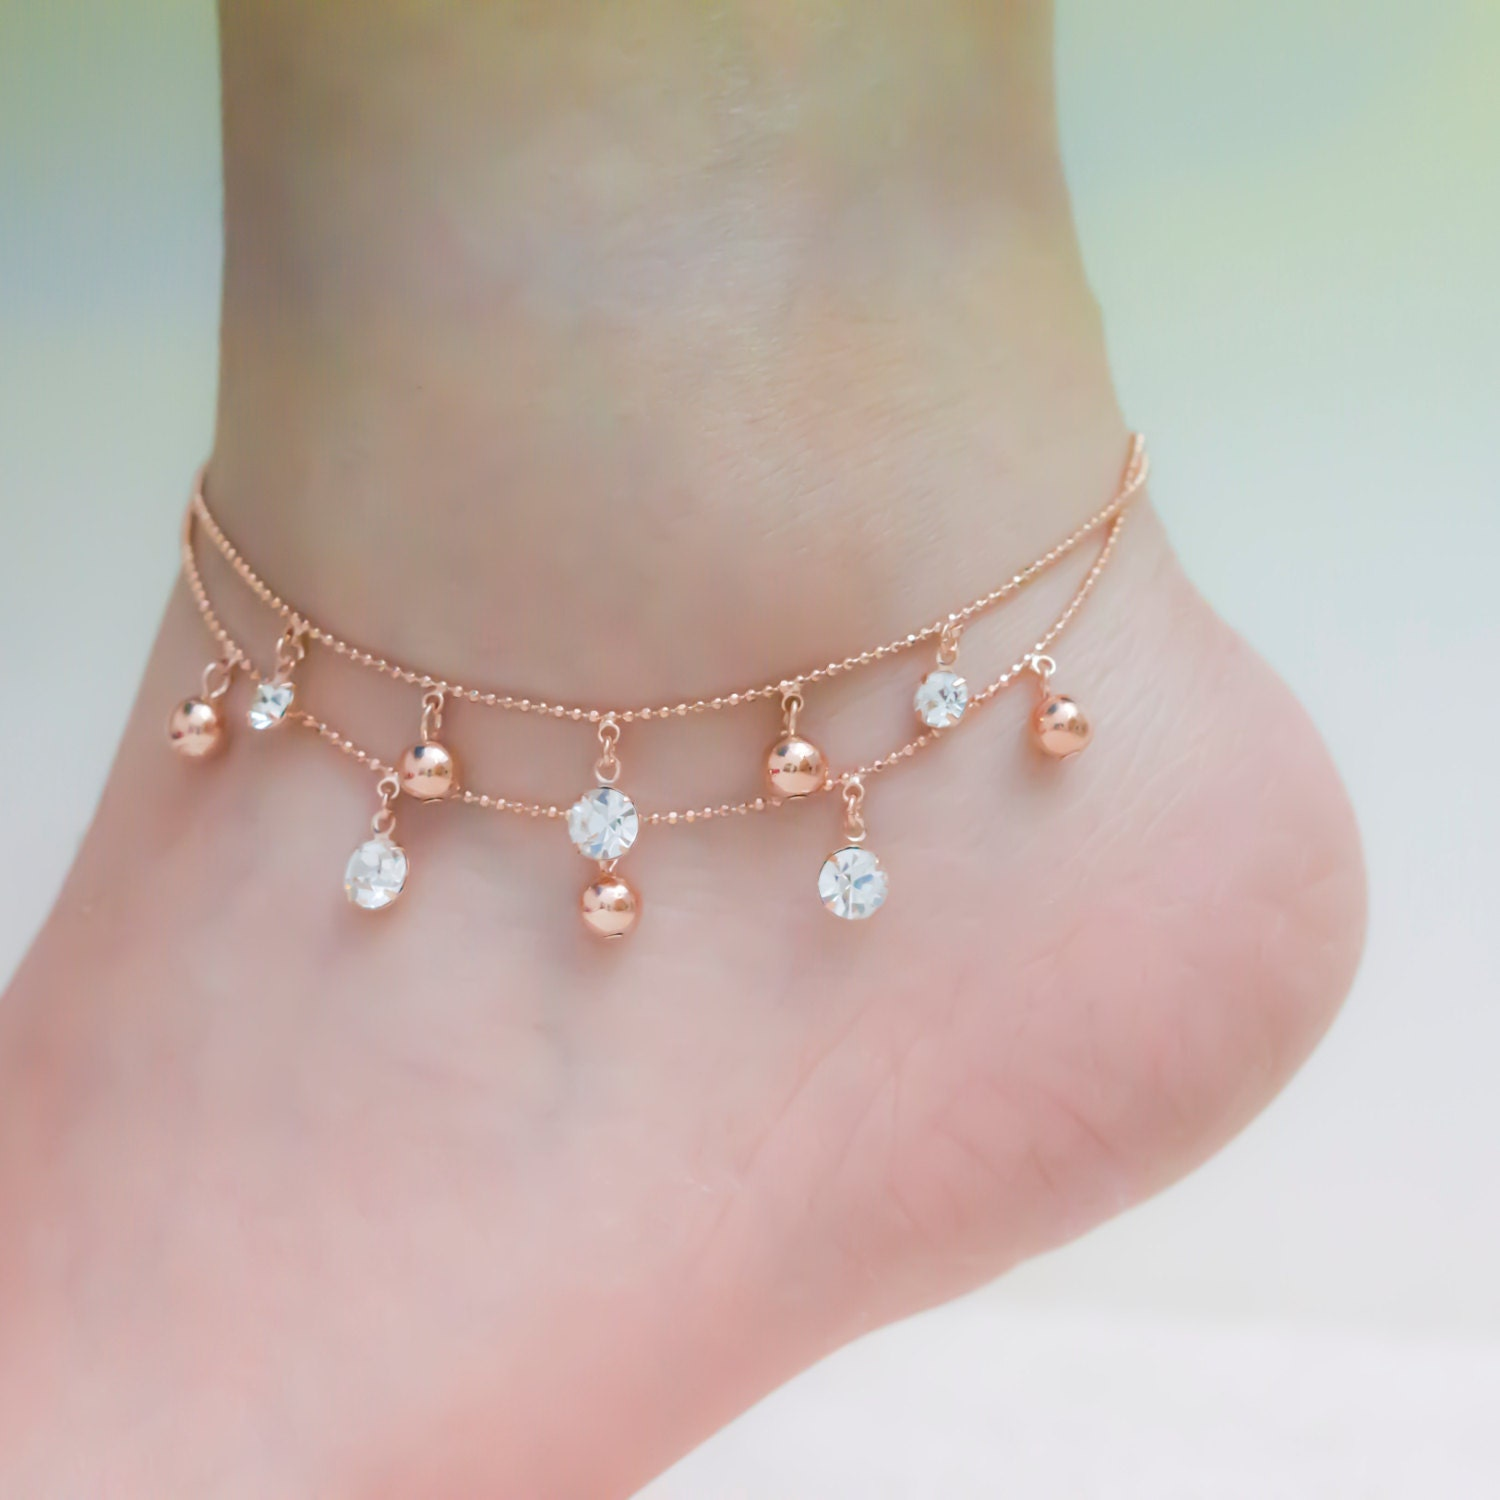 diamond anklet nana products gold single bezel toe bracelet collections anklets ankle finejwlry bijou productimg